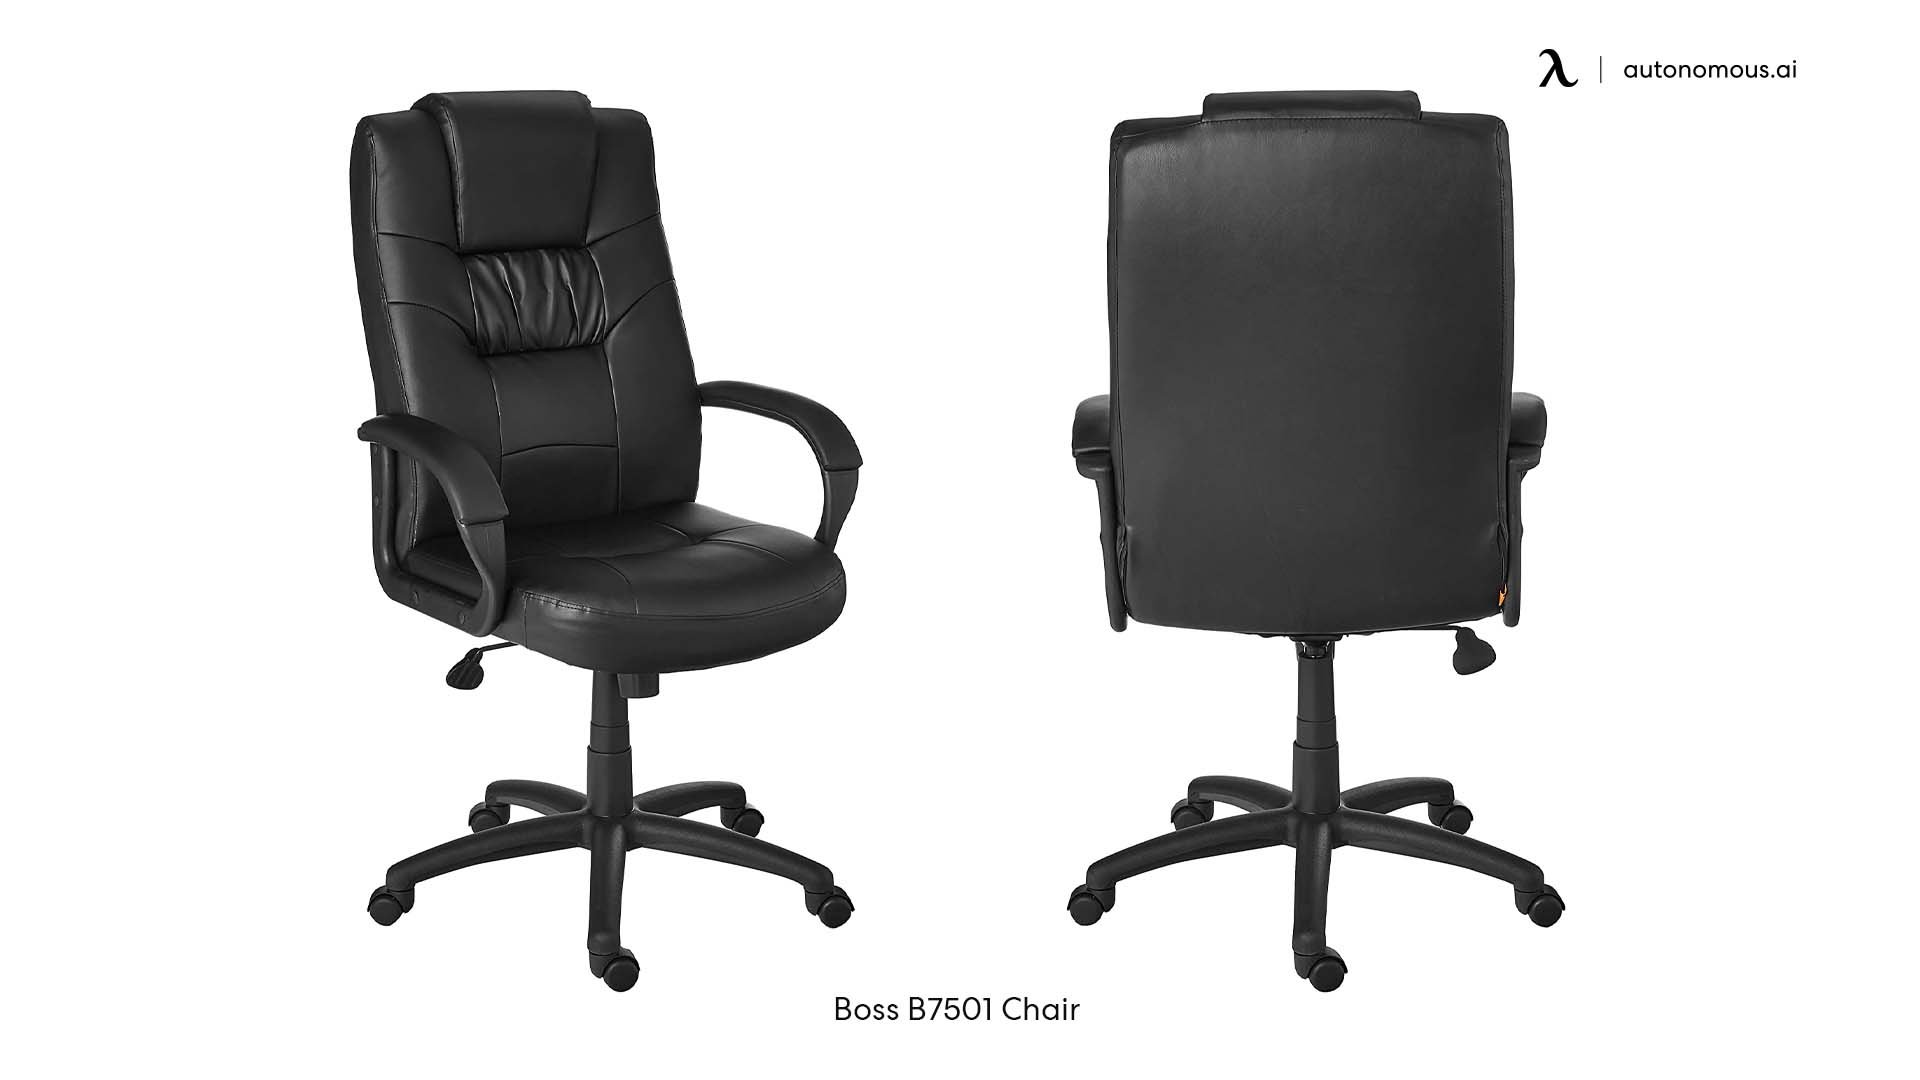 Boss B7501 Comfortable office chairs for long hours